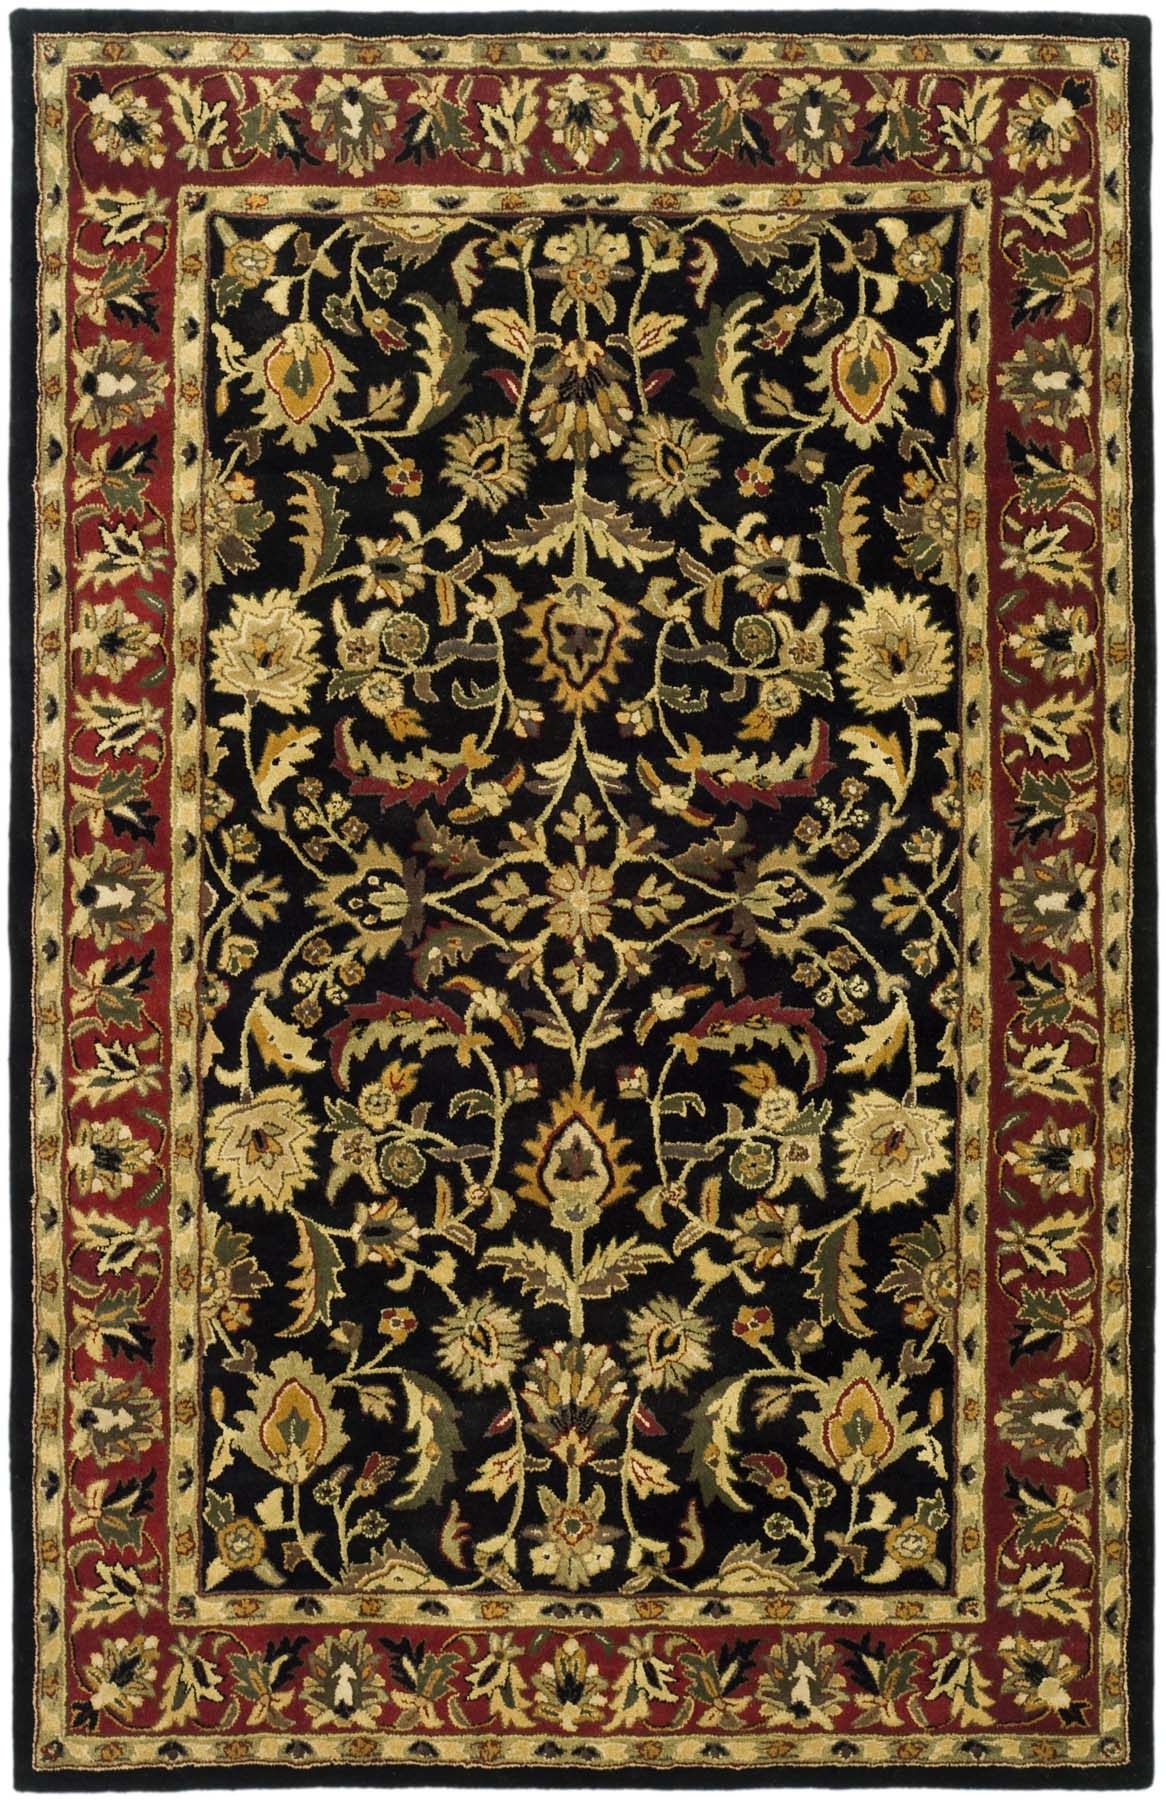 Rug Hg953a Heritage Area Rugs By Safavieh